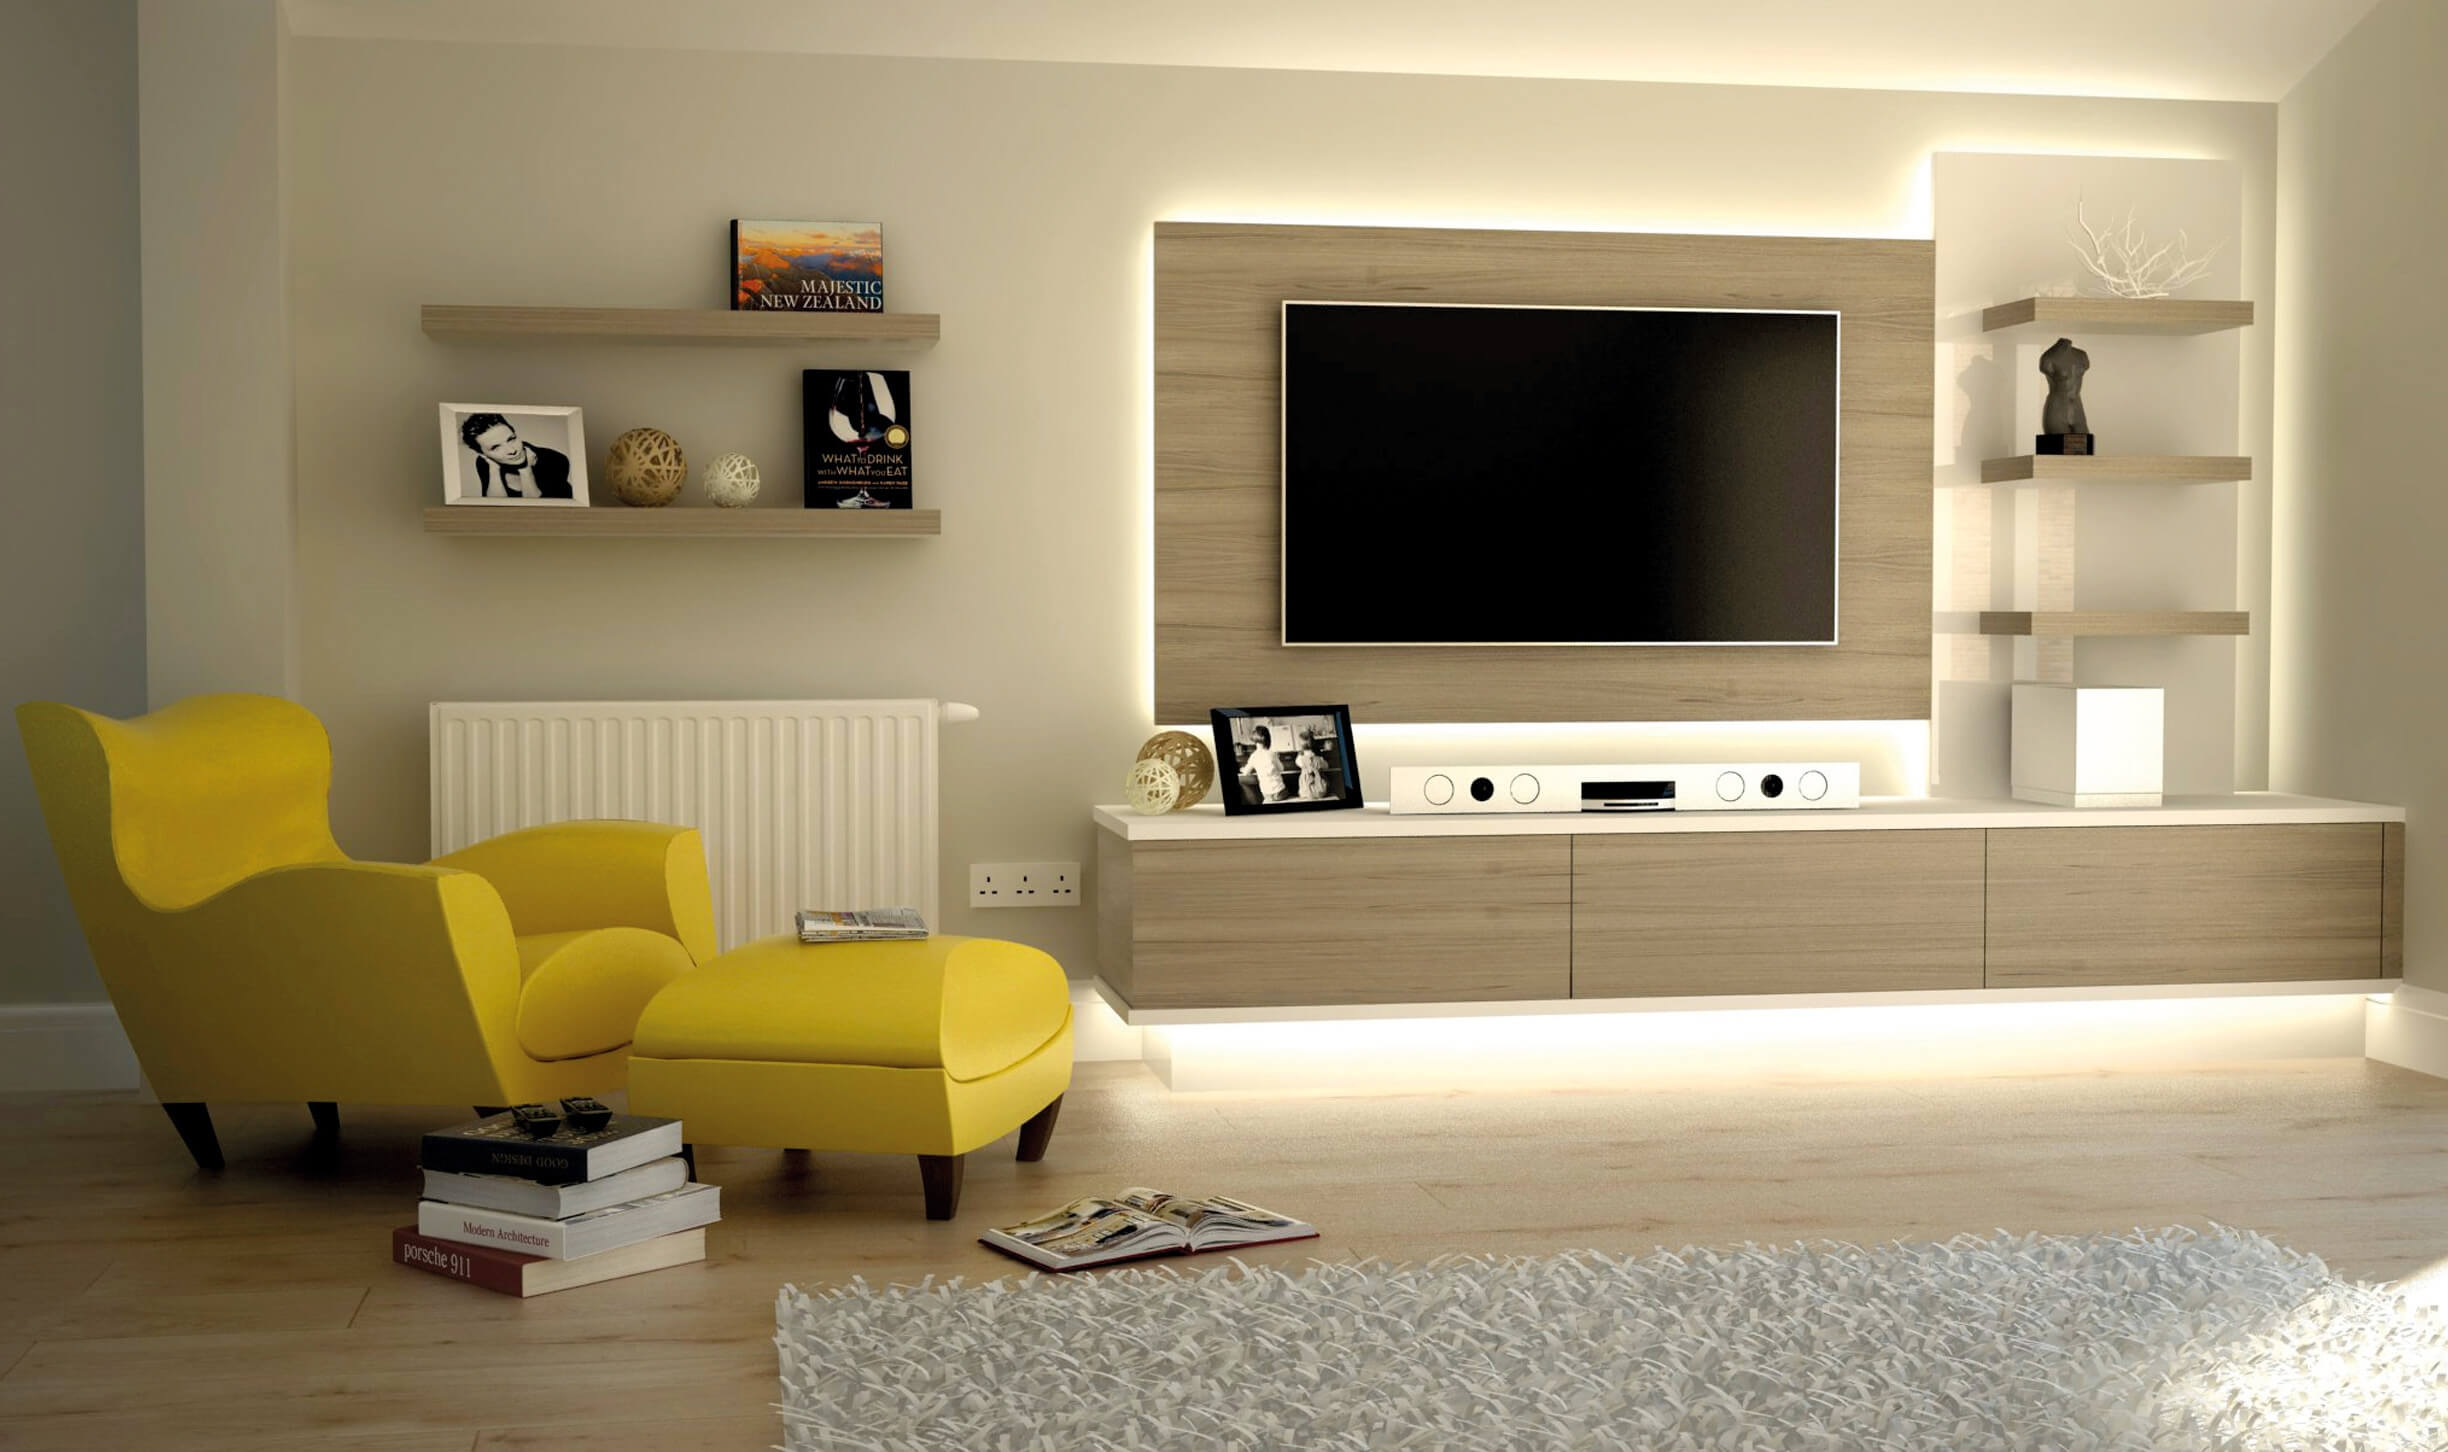 Bespoke Tv Cabinets Bookcases And Storage Units For Over 50 For Bespoke Tv Unit (View 4 of 15)